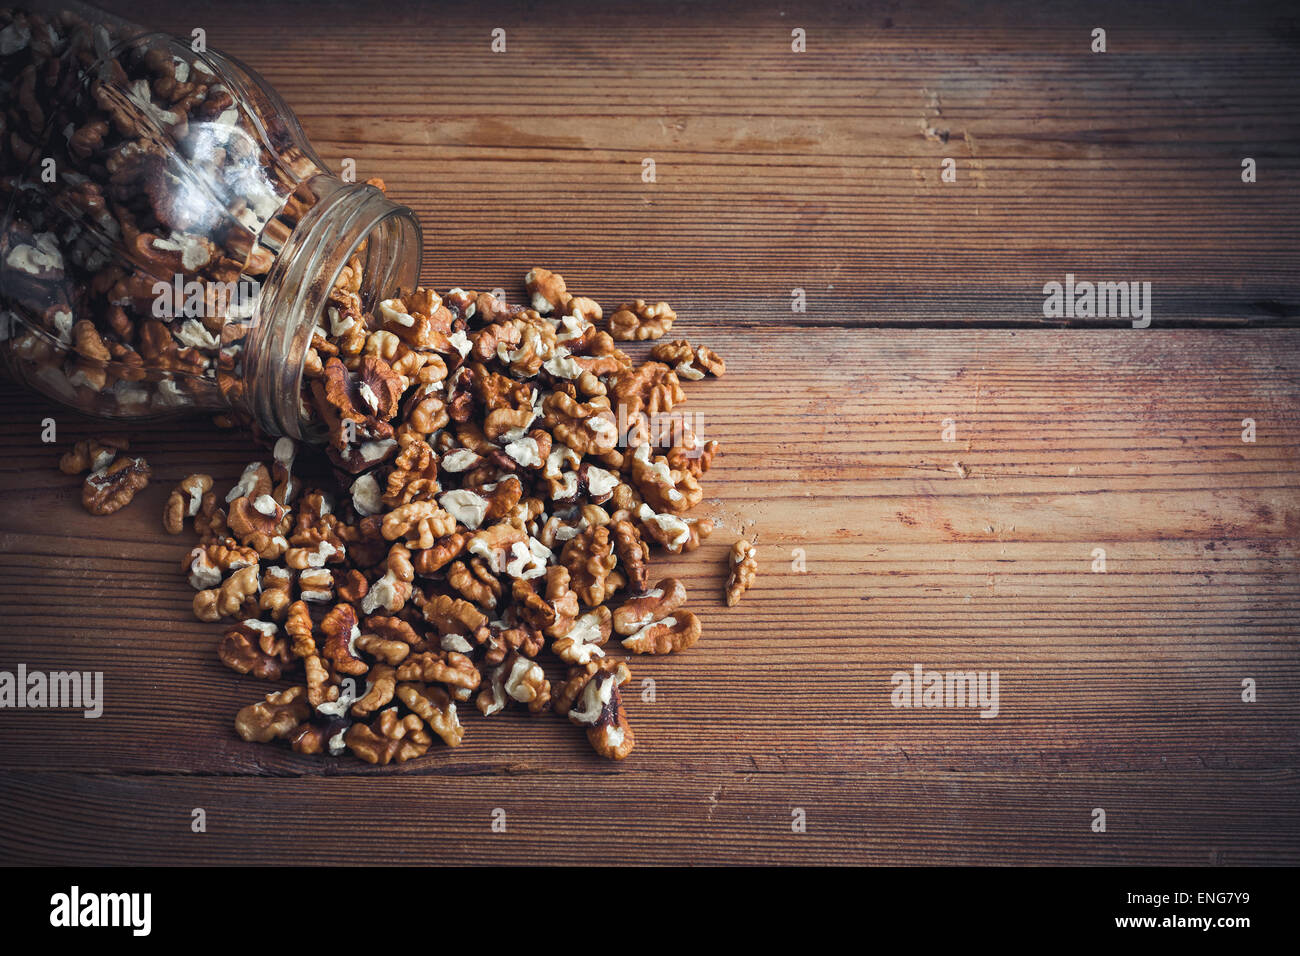 Walnut kernels and whole walnuts on rustic old wooden table glass jar Stock Photo